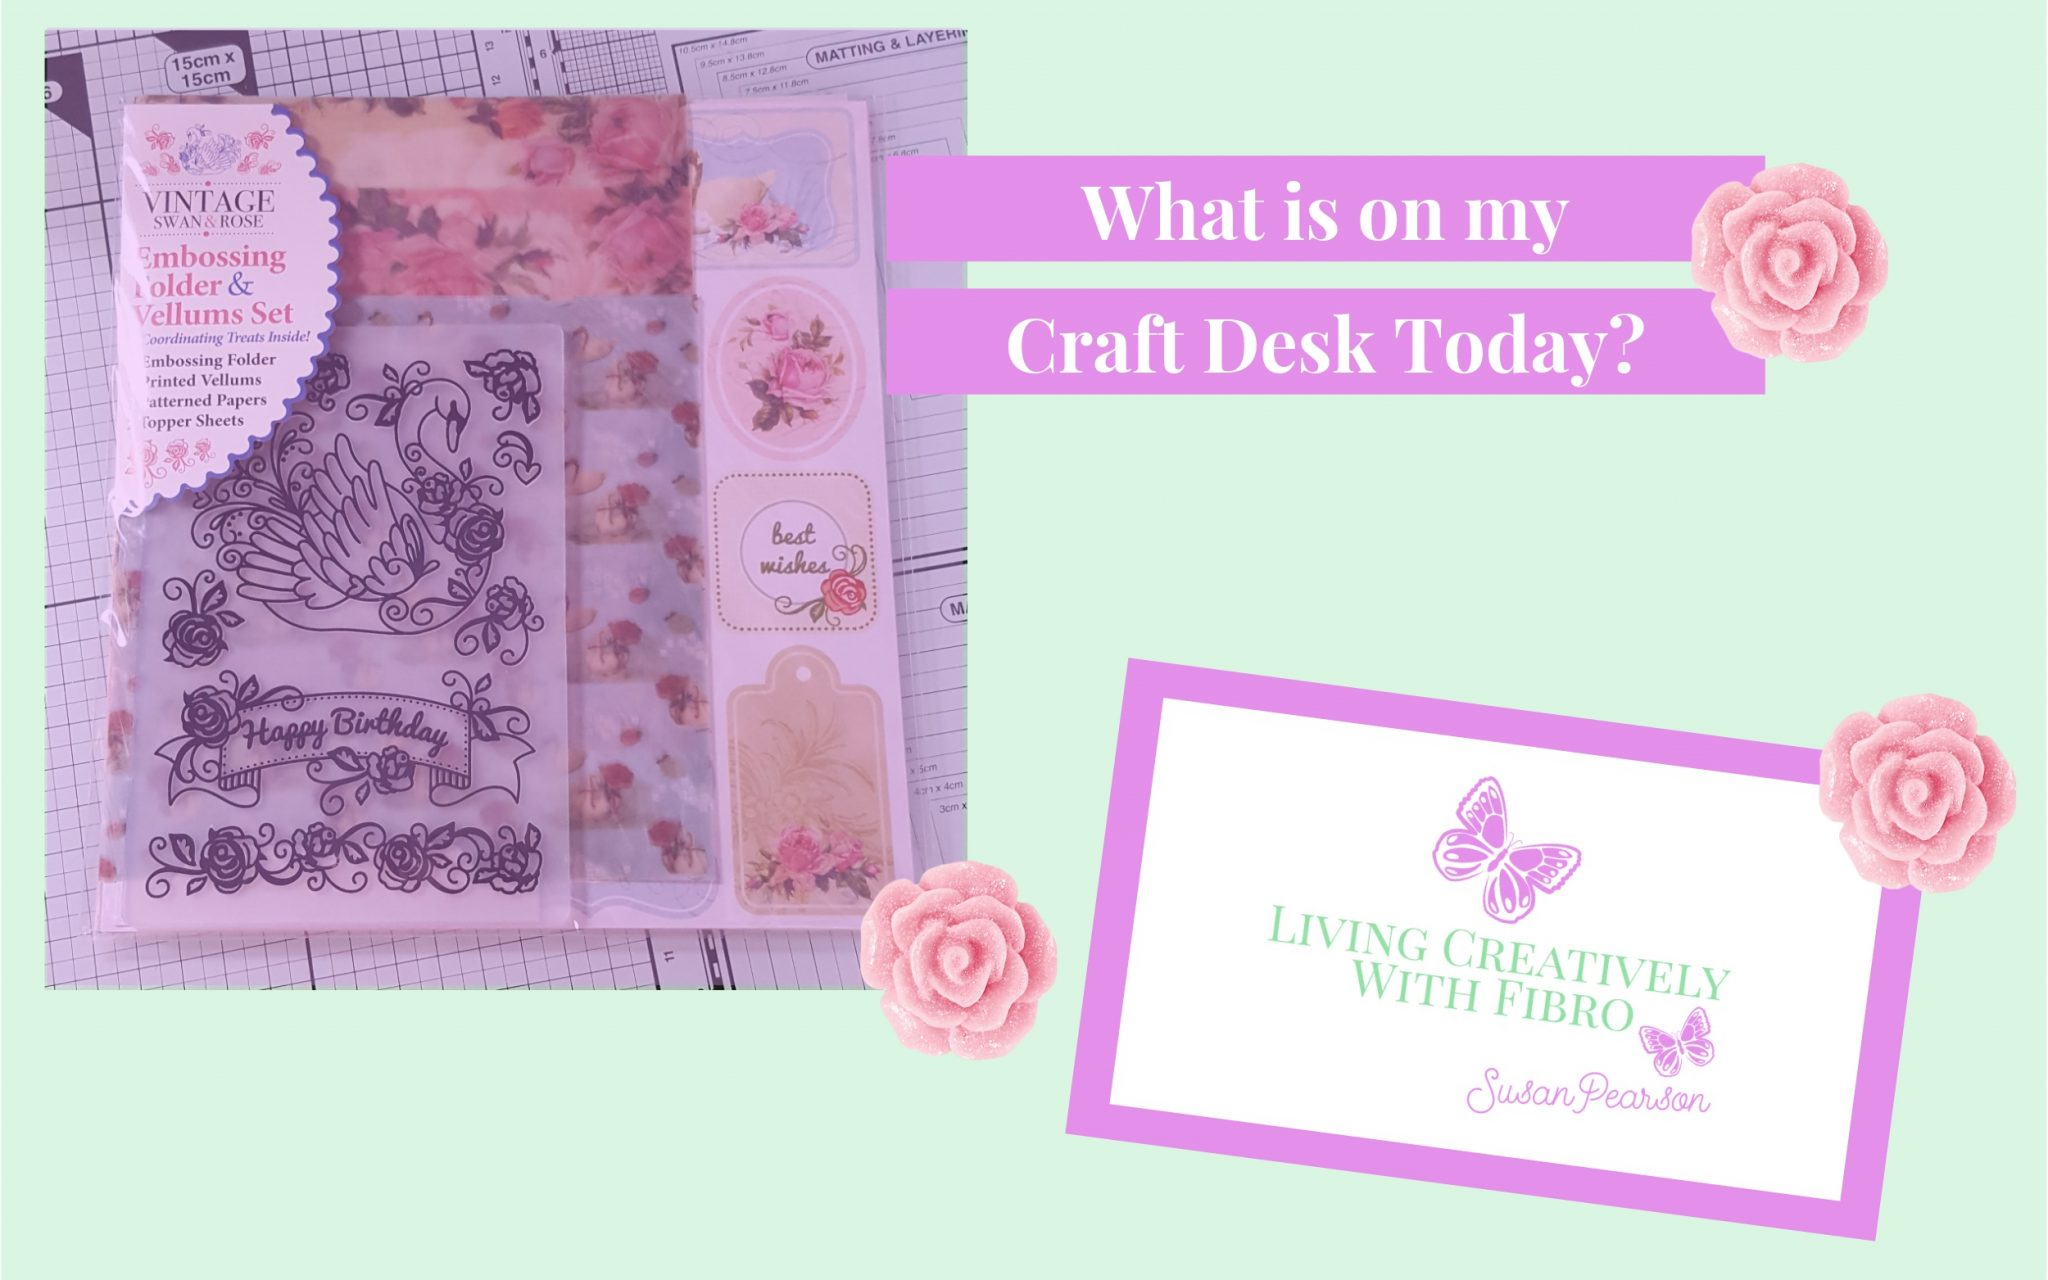 Living Creatively with Fibro | Vintage Swan & Rose on Craft Desk